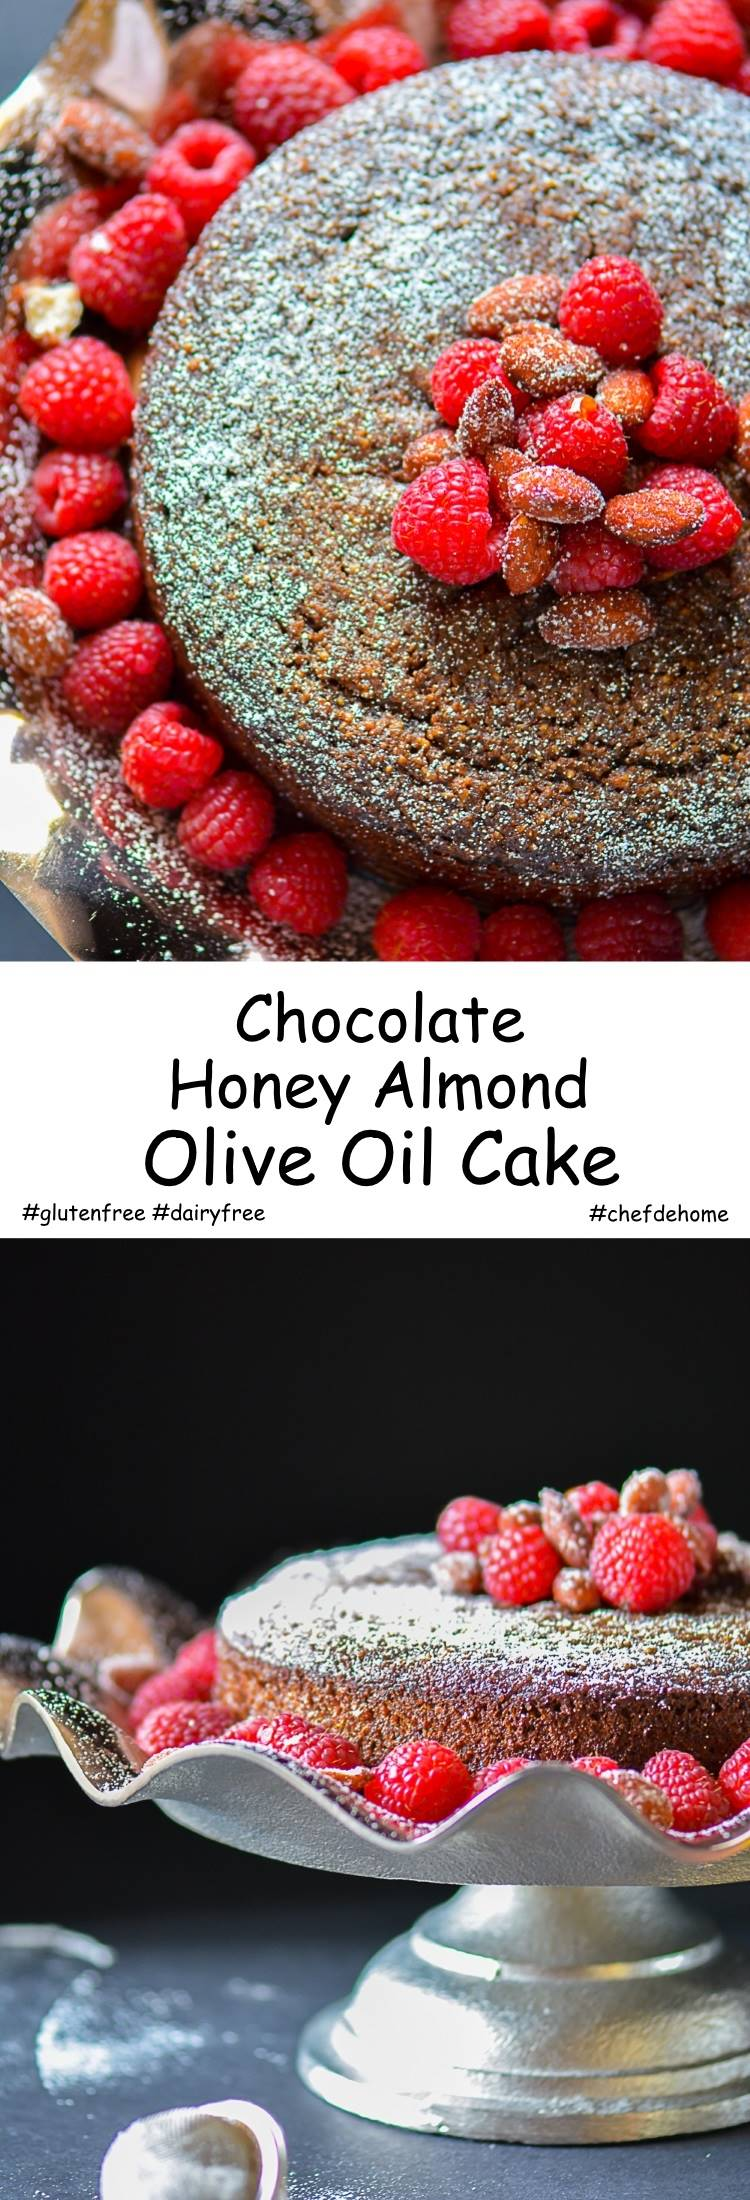 Moist Flourless Gluten free and also refined sugar free Chocolate Honey Almond Olive Oil Cake | chefdehome.com